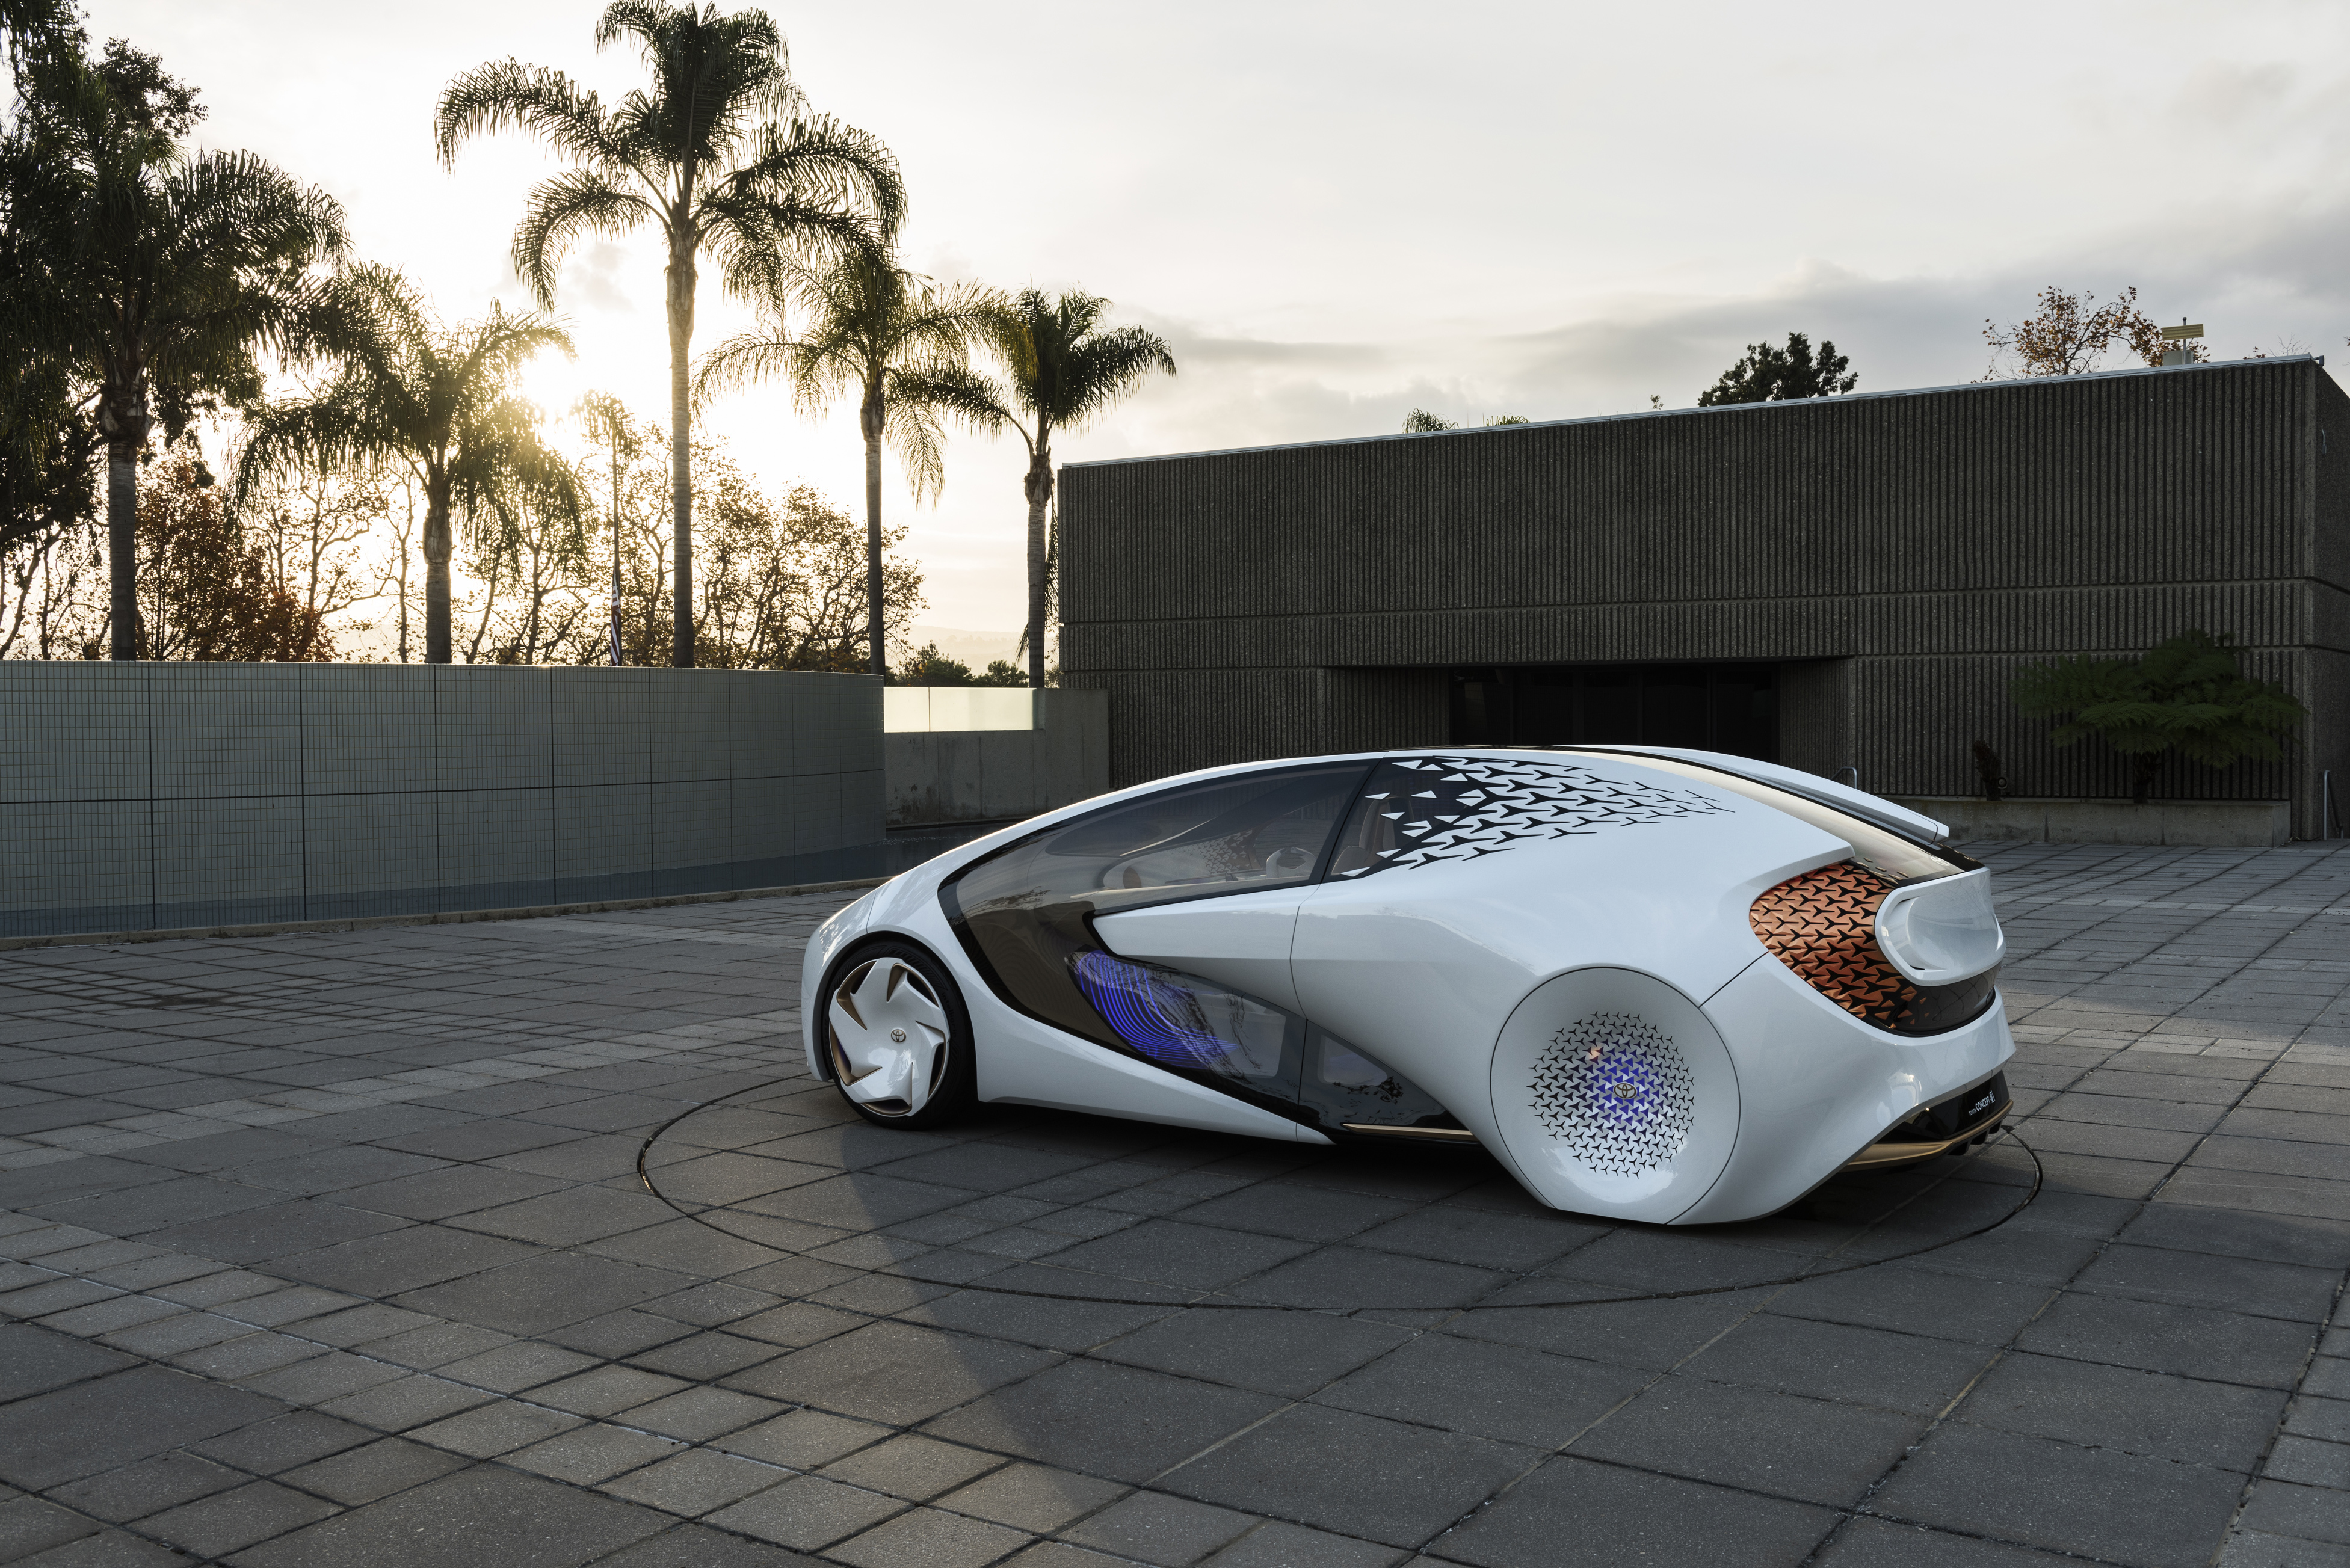 Toyota unveiled its Concept-i car, which focuses on user experience and the relationship between the car and the driver.